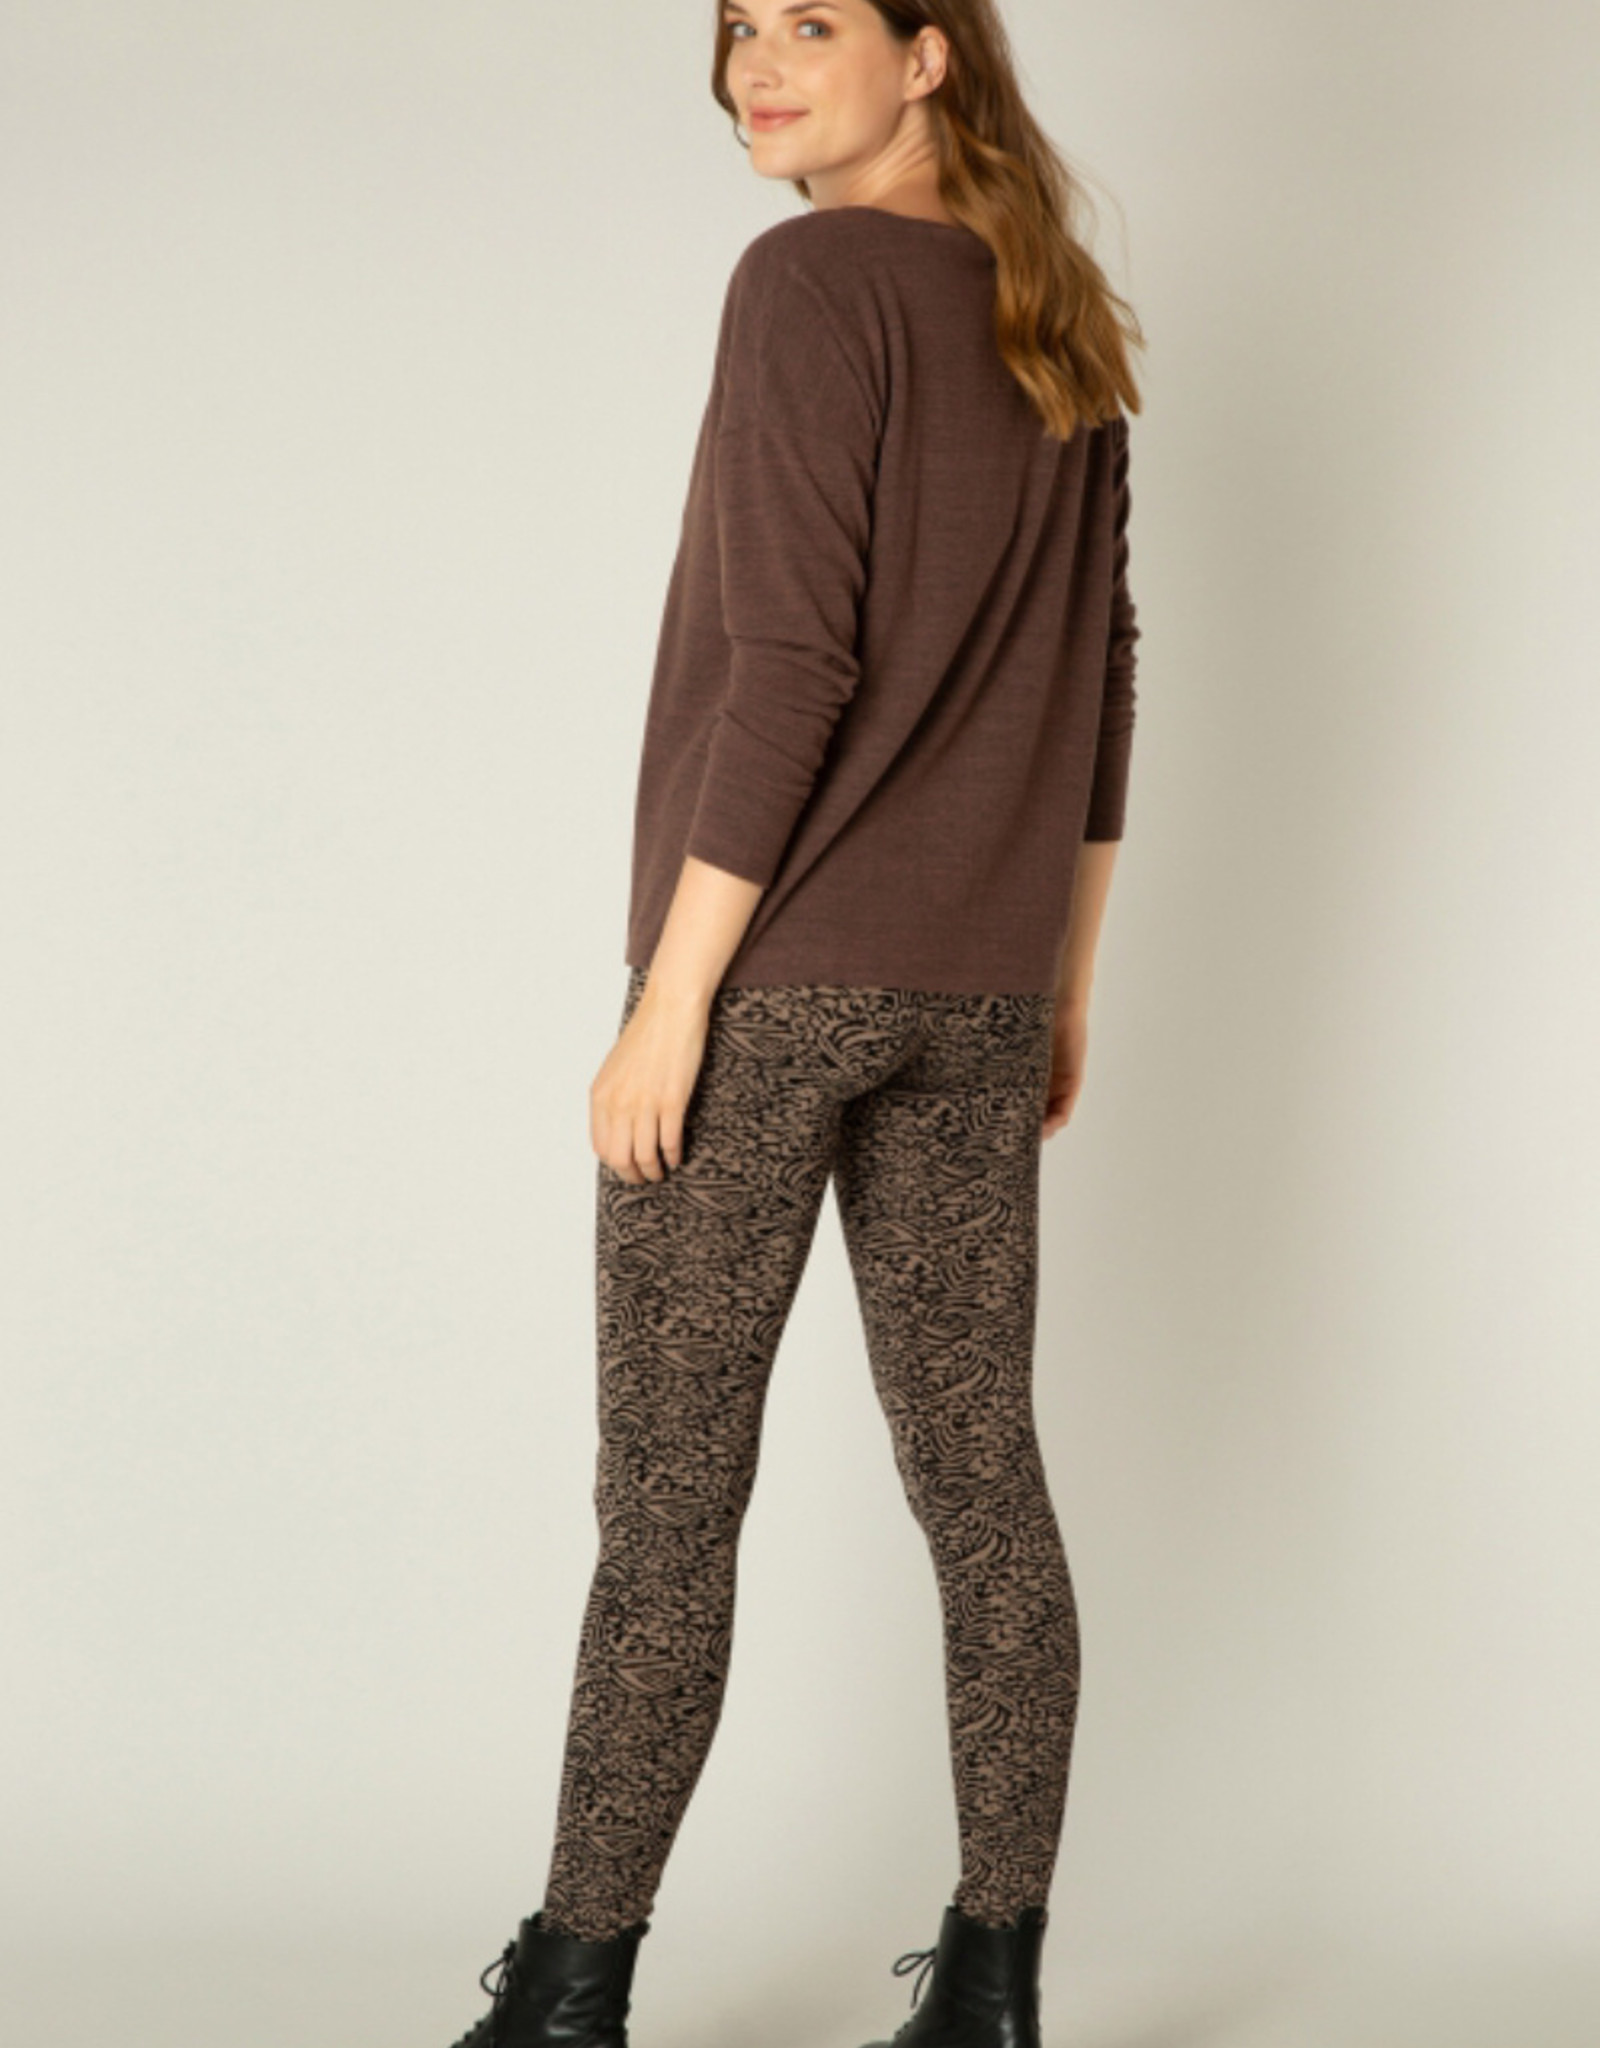 Yest Yest 2226 Yessi Jersey Long Sleeve Top With Round Neckline